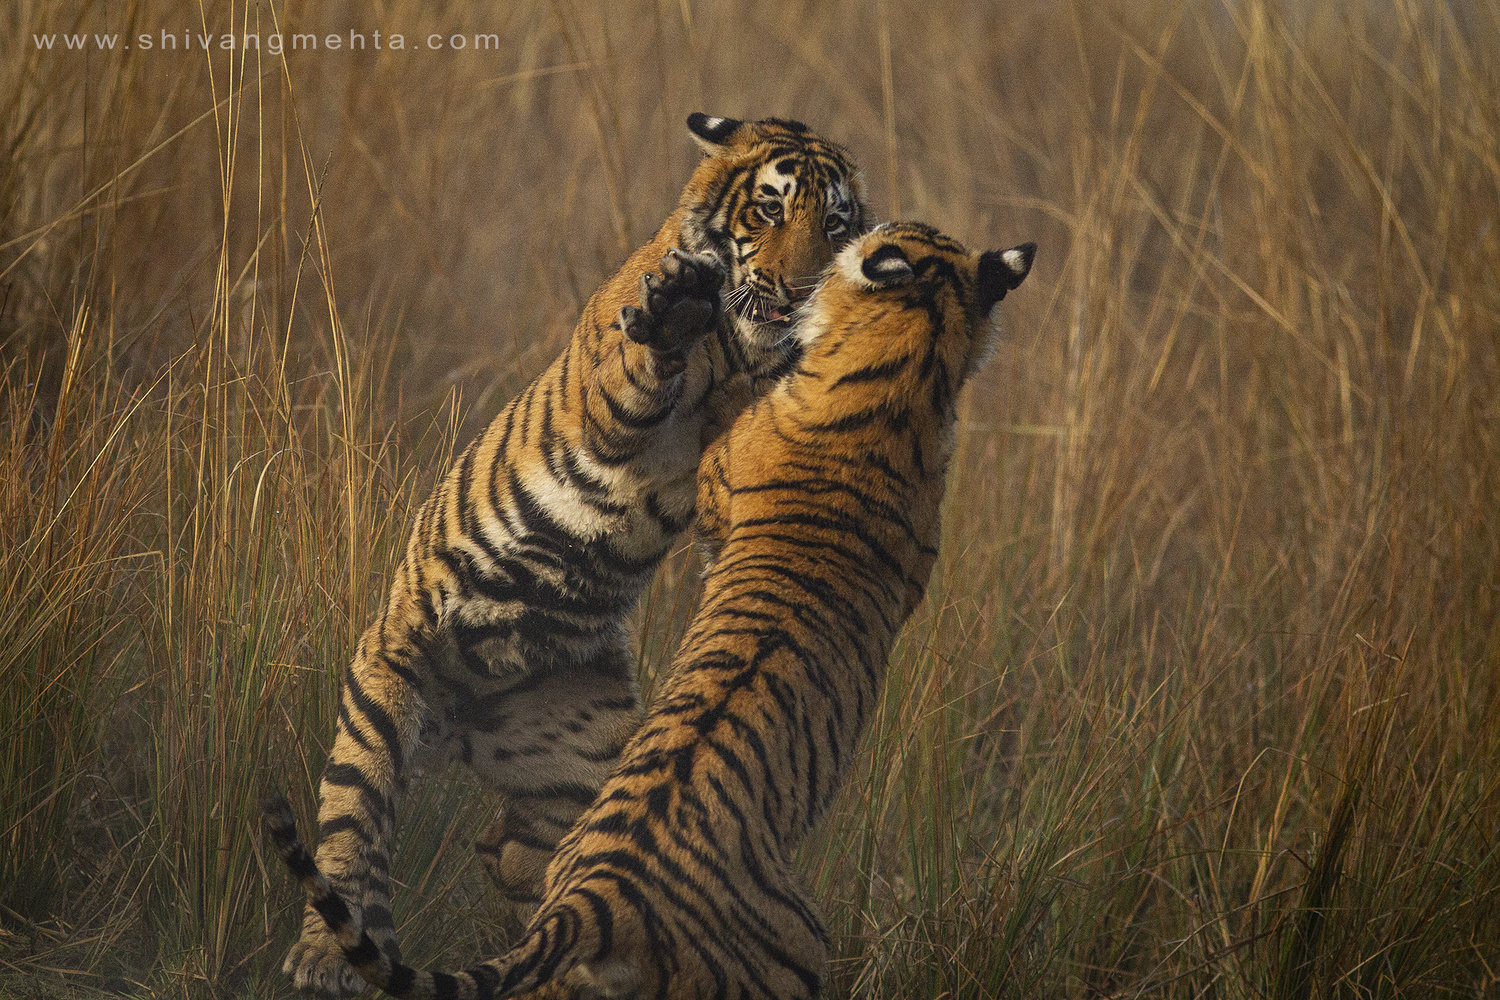 When tigers play by Shivang Mehta